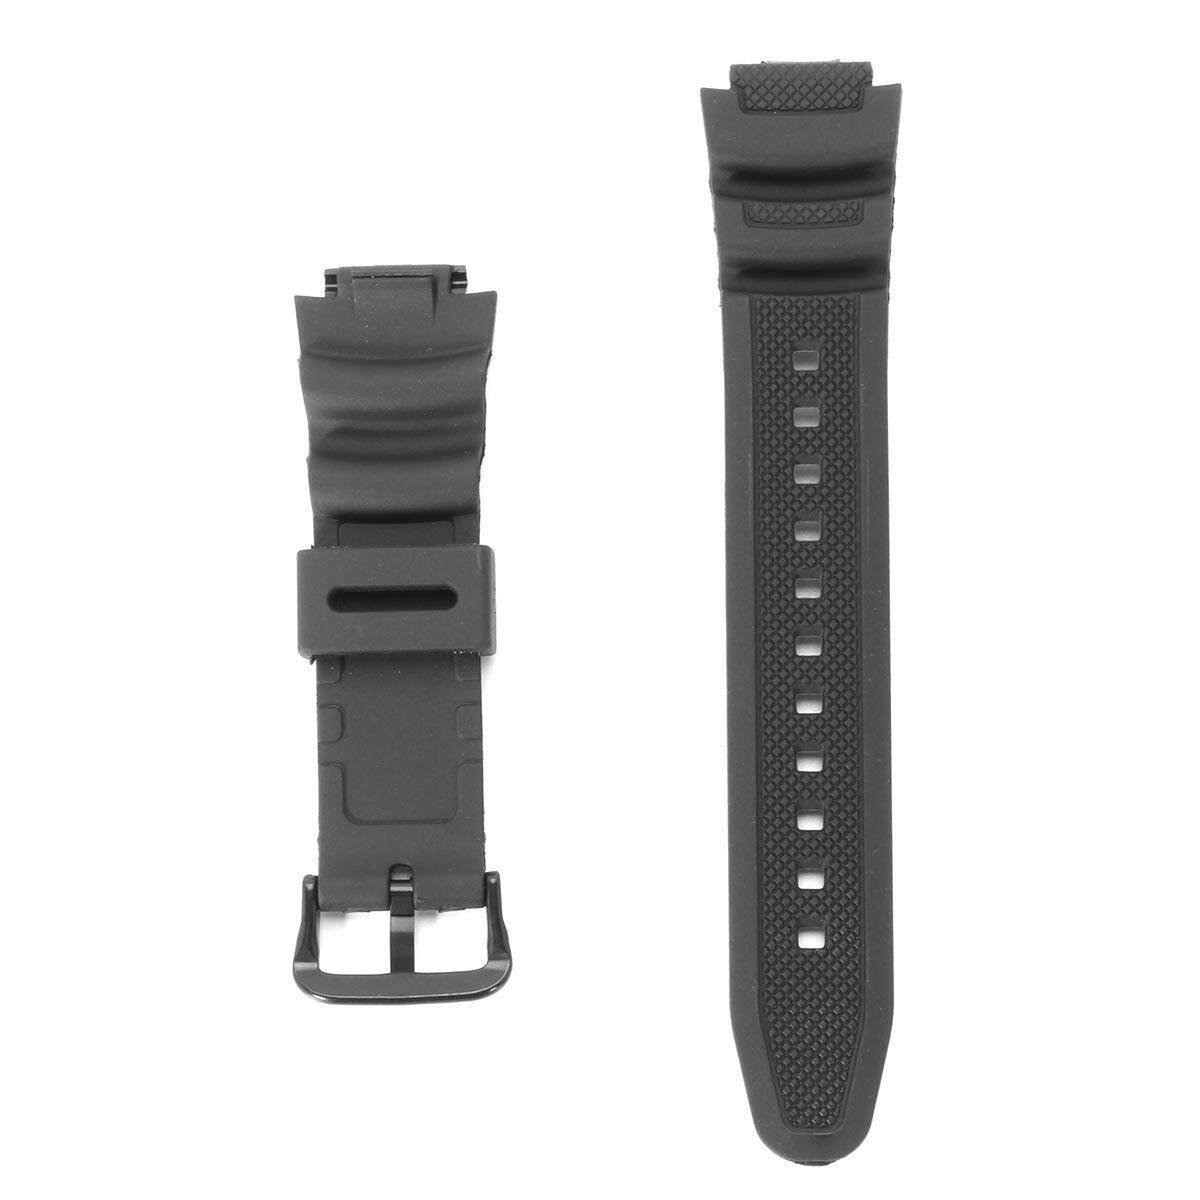 Replacement Black Wrist Band Strap For CA SIO Watch AQ-S810W SGW-300H SGW-400H